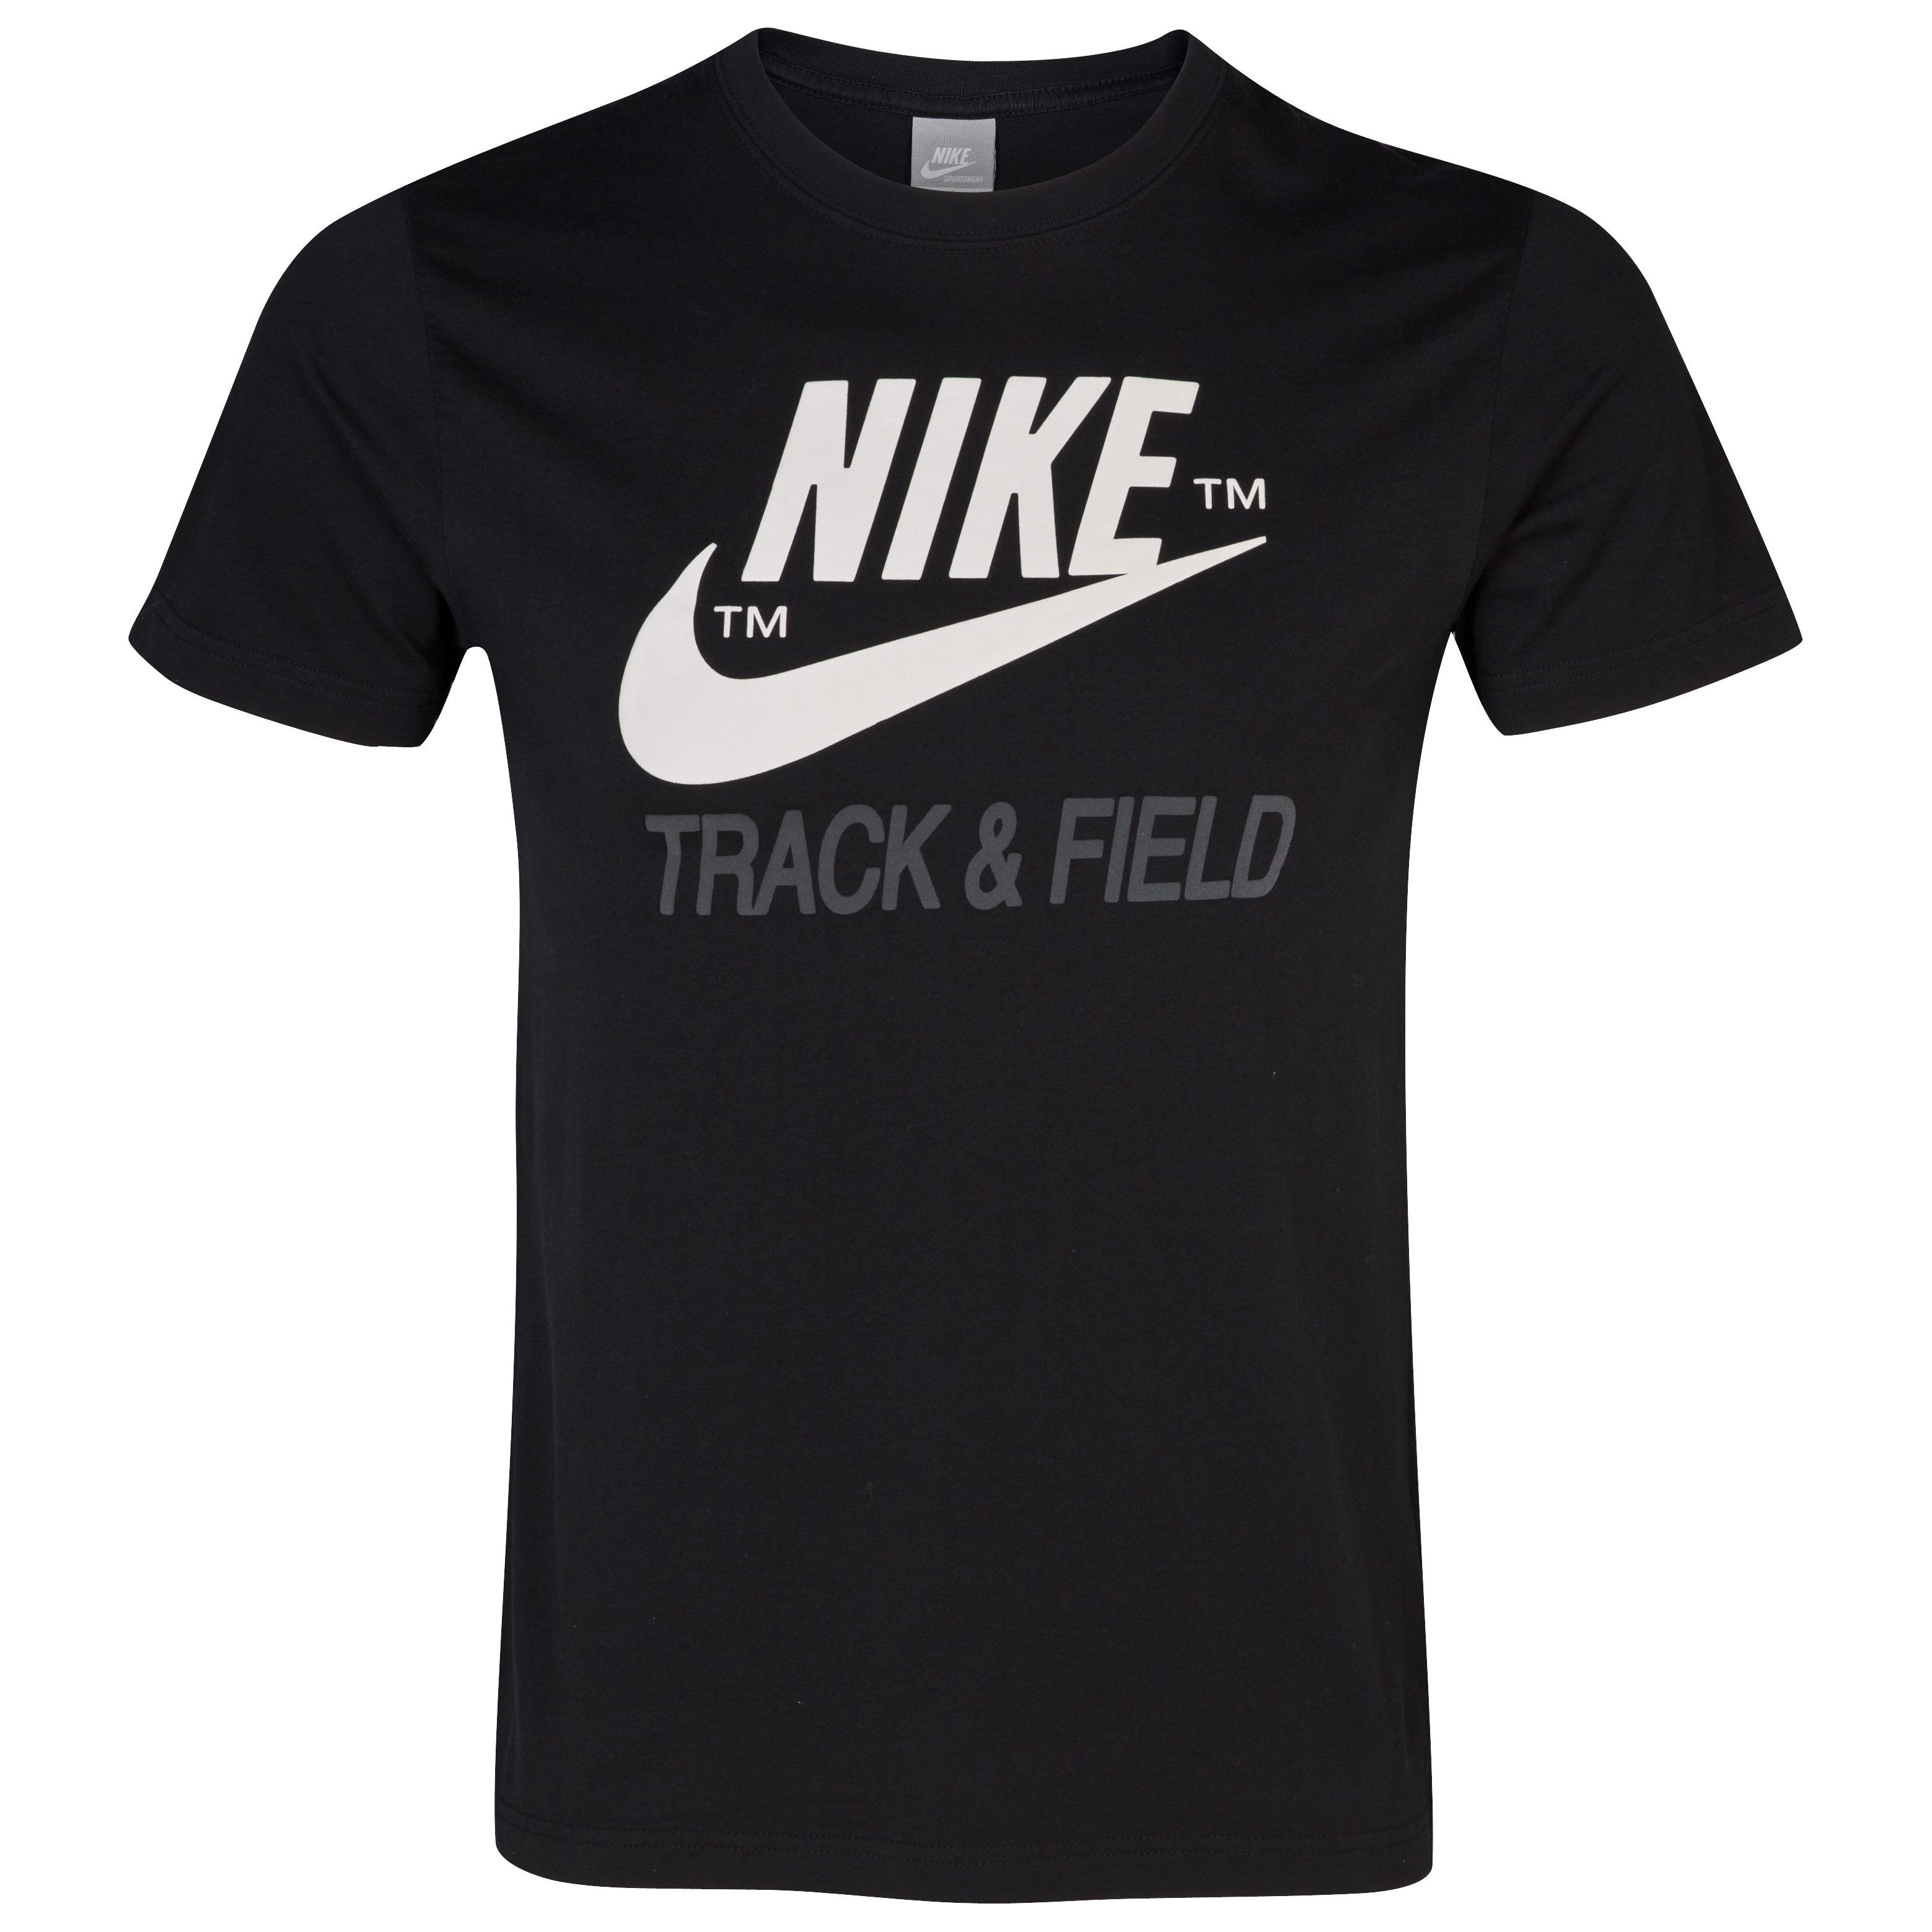 Nike Running NTF T-Shirt - Black/Anthracite